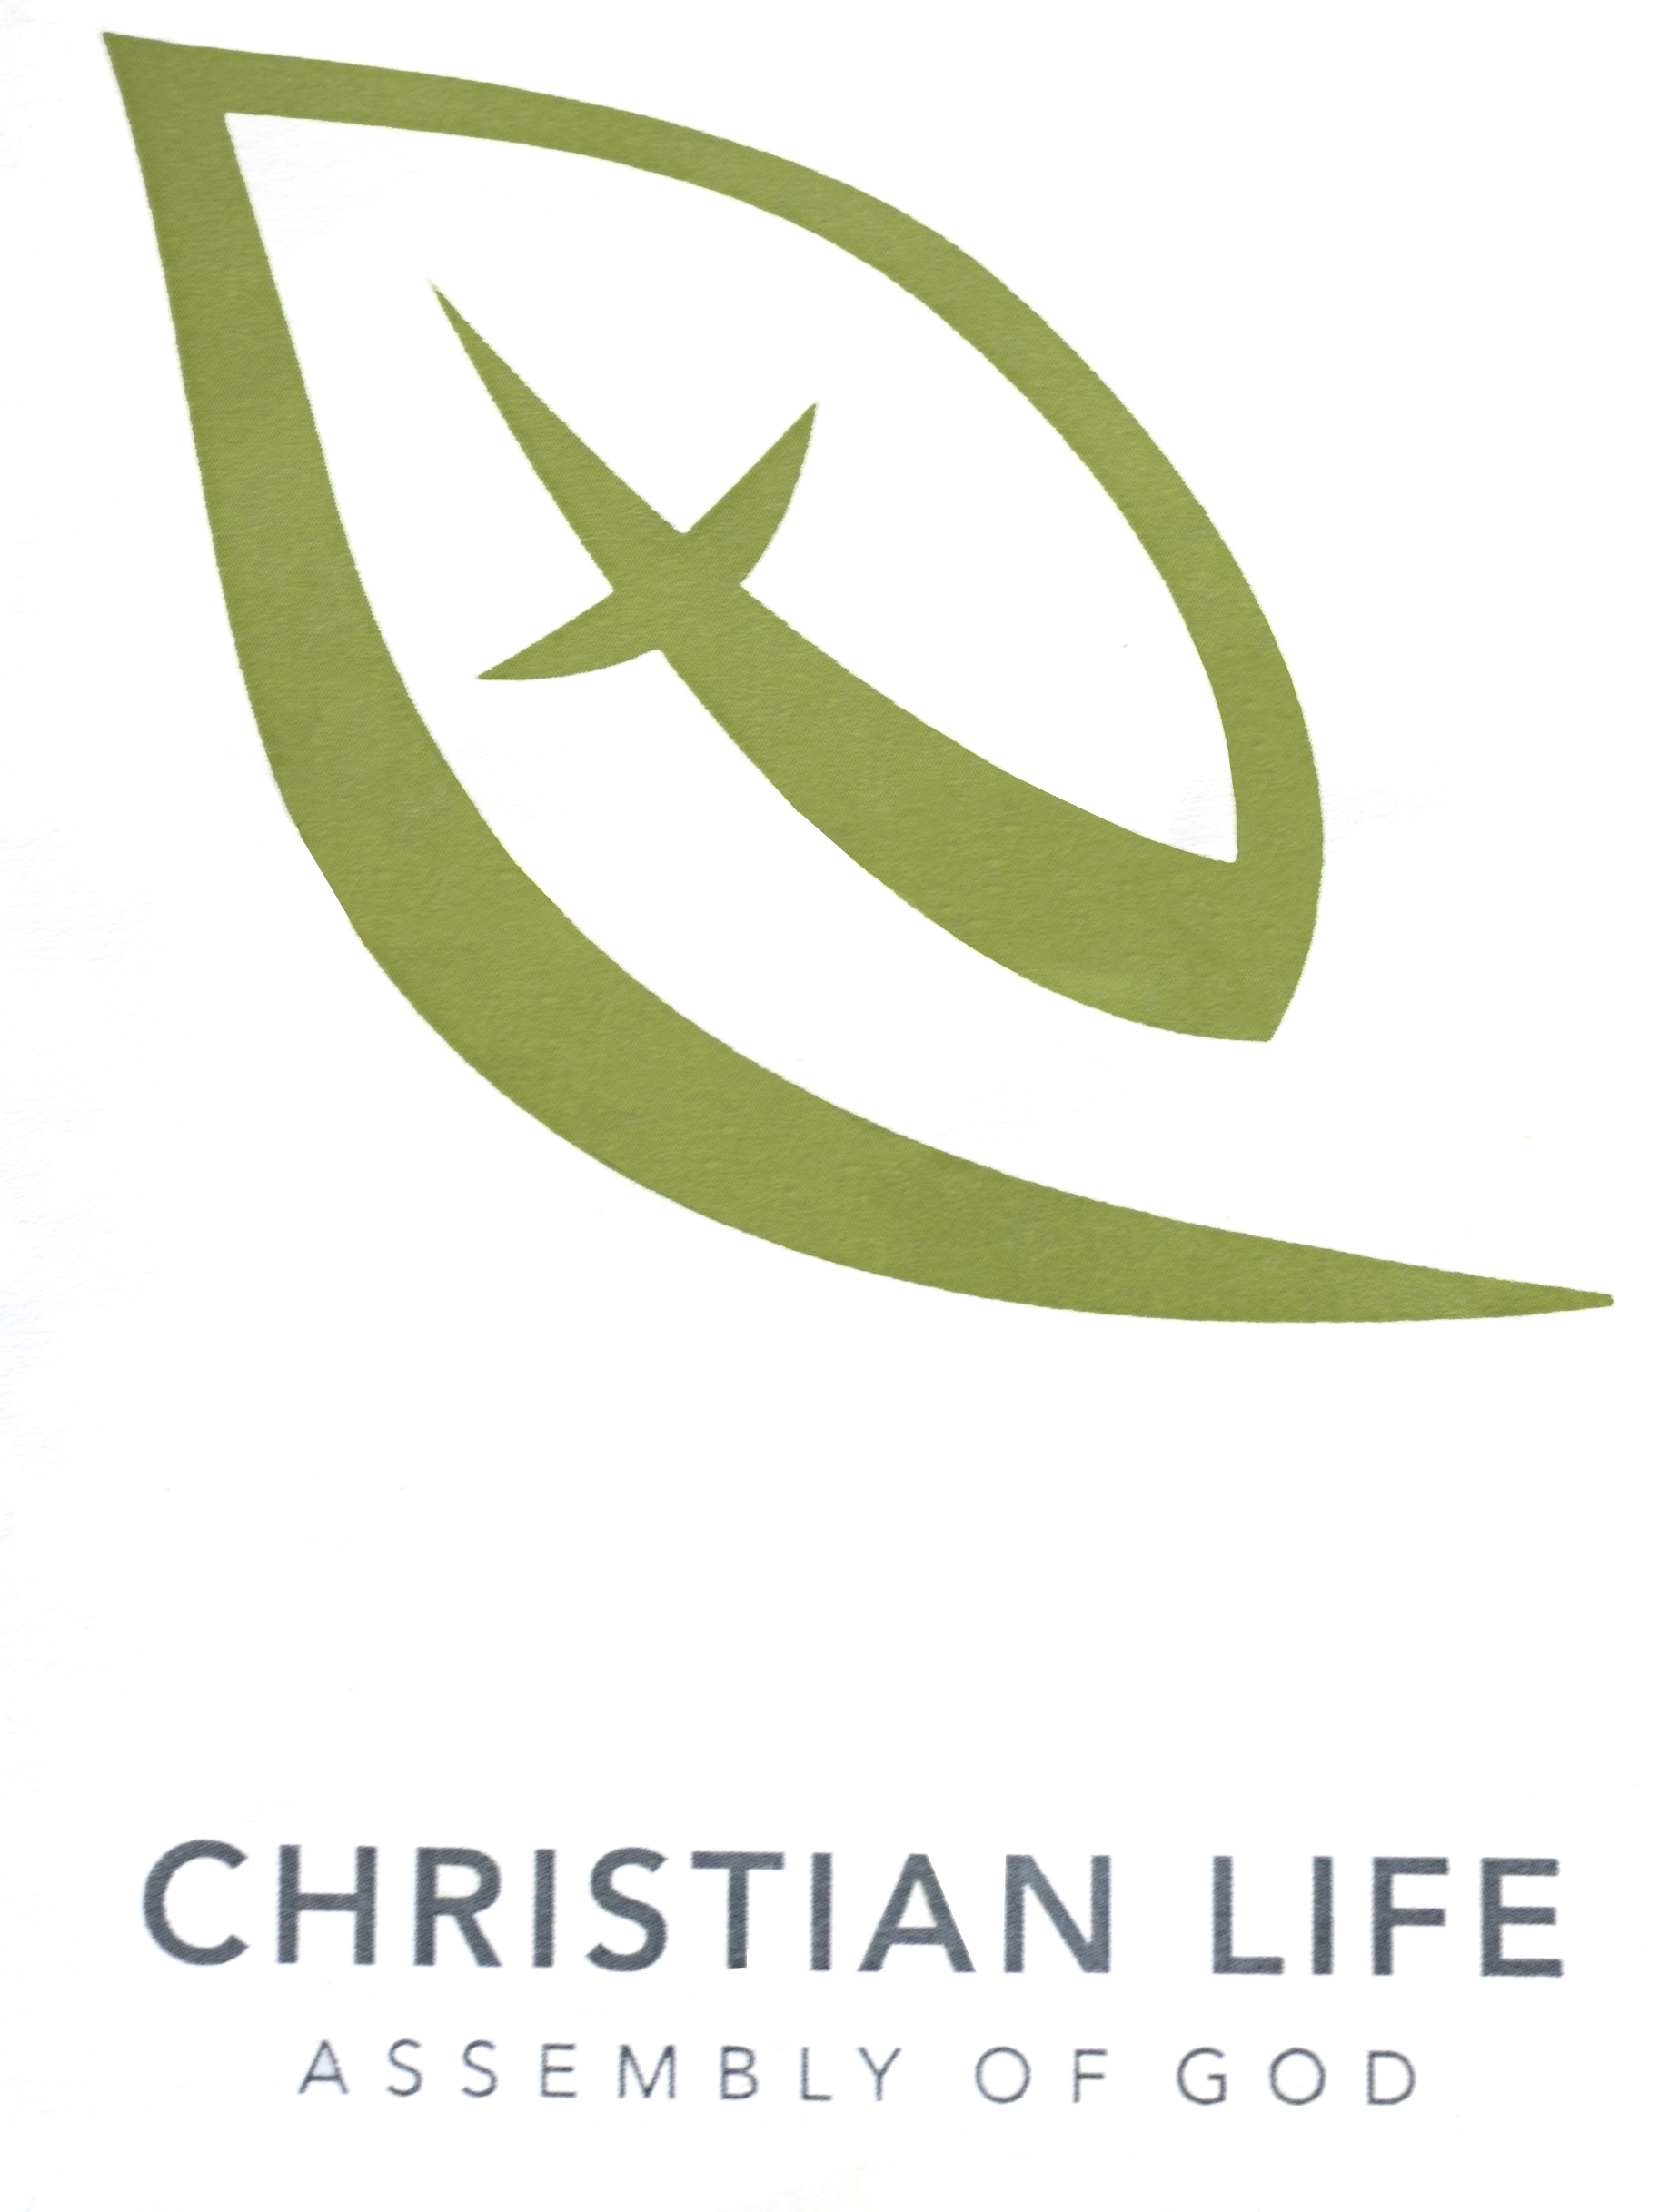 Christian Life Assembly of God